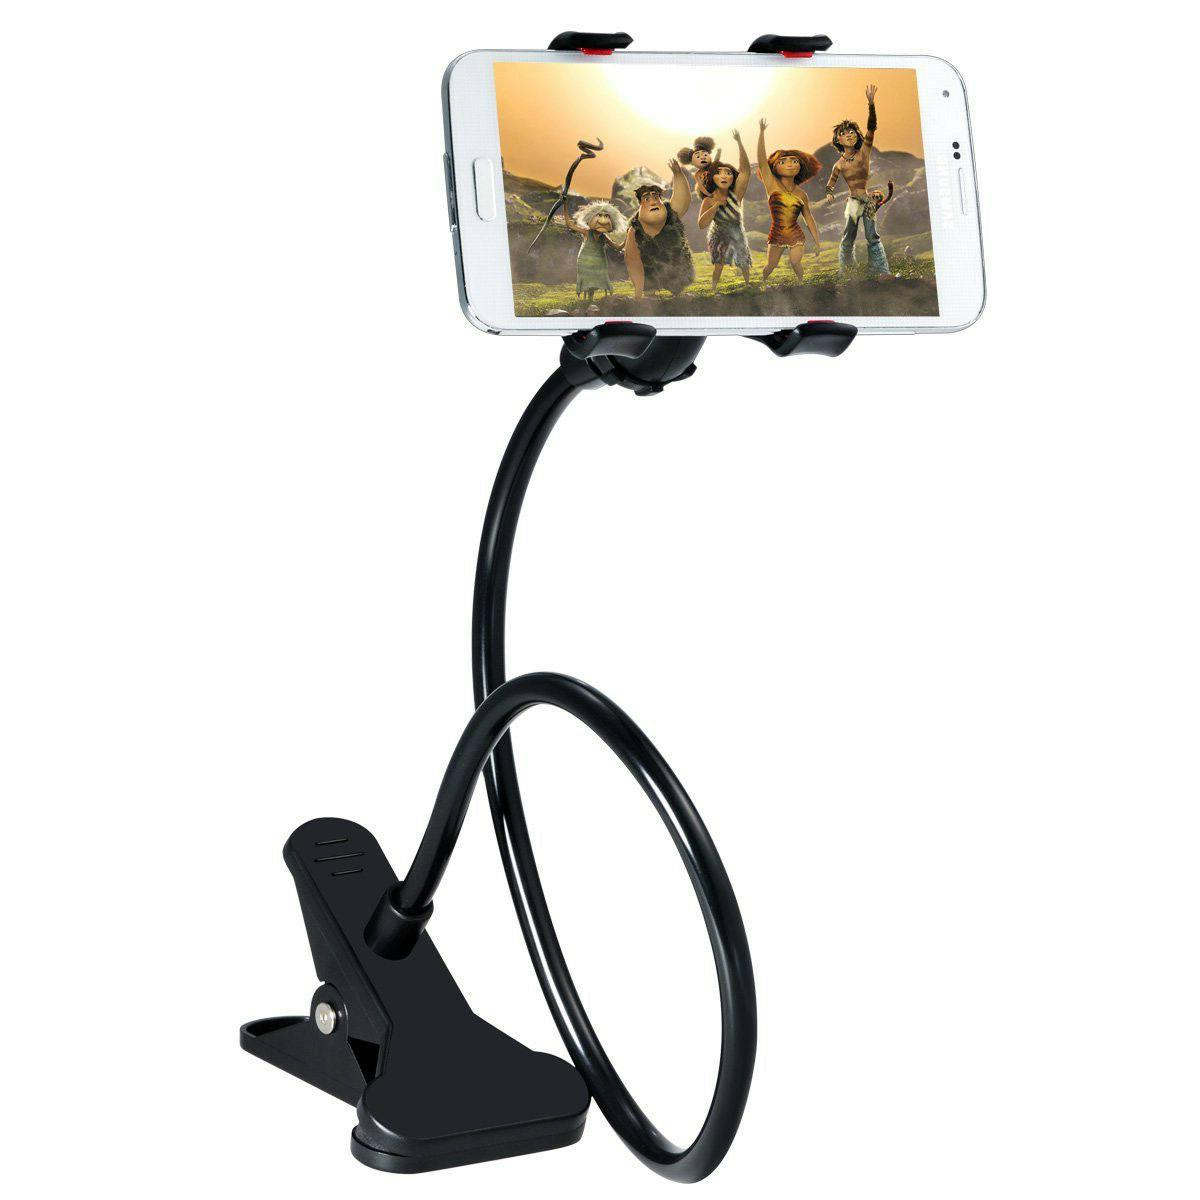 Universal Lazy Mobile Phone Desk Stand Bracket for Samsung